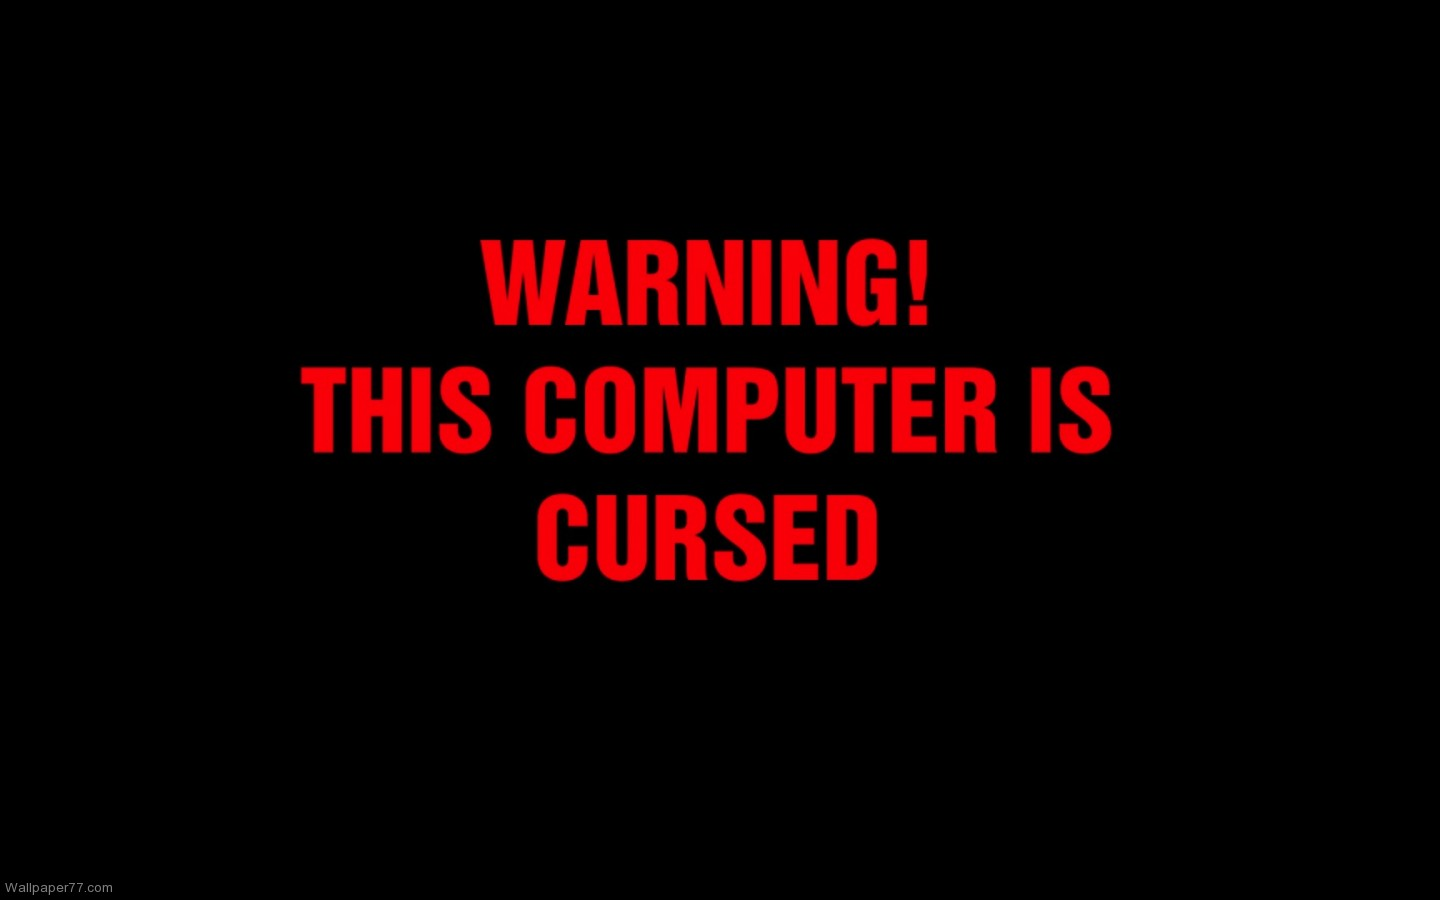 Computer Is Cursed Cute Fun Wallpapers Funny Wallpapers 1600x900 Jpg 1440x900